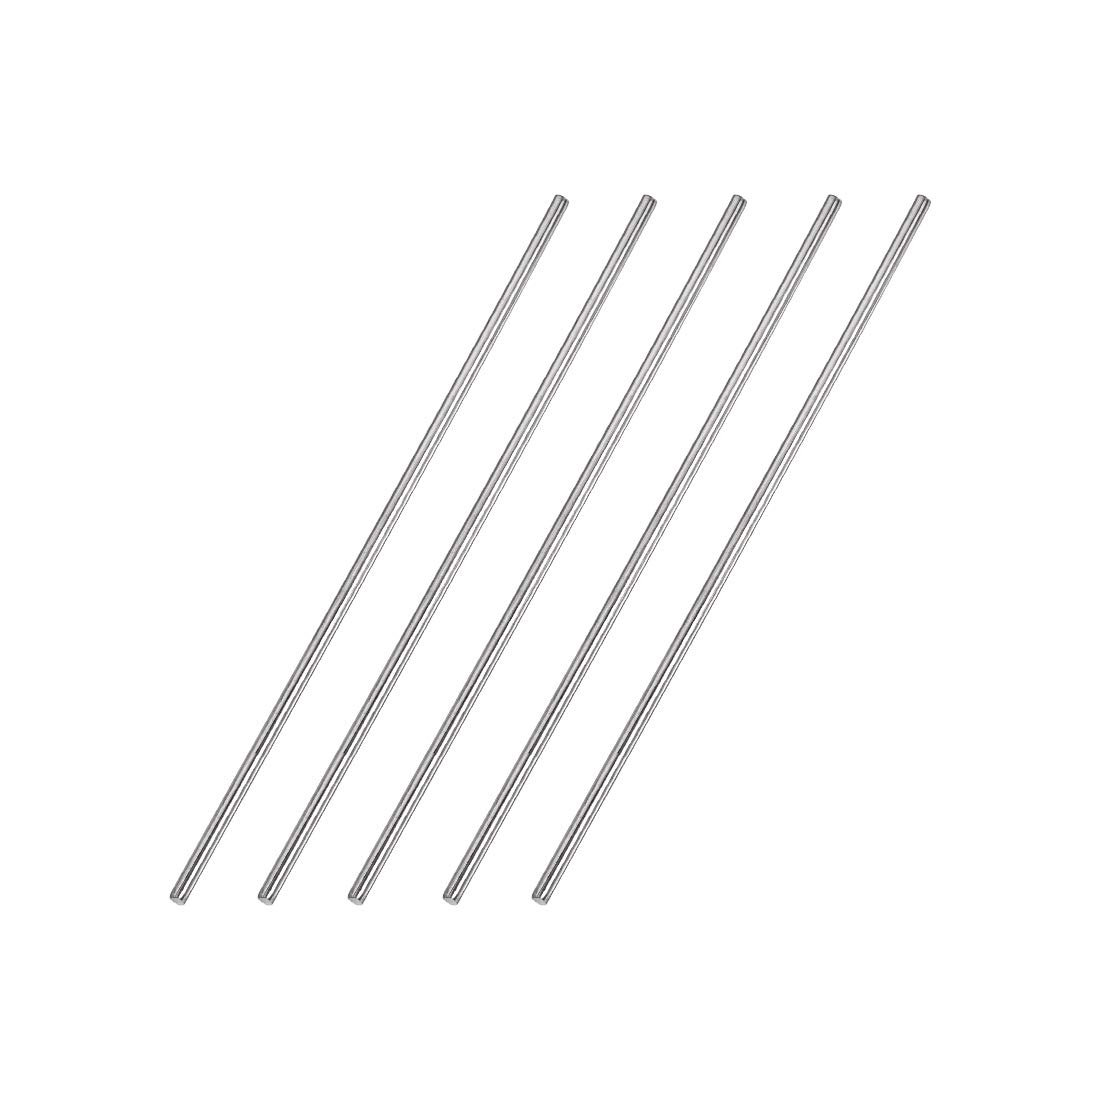 5pcs uxcell 2.5mm x 150mm 304 Stainless Steel Solid Round Rod for DIY Craft